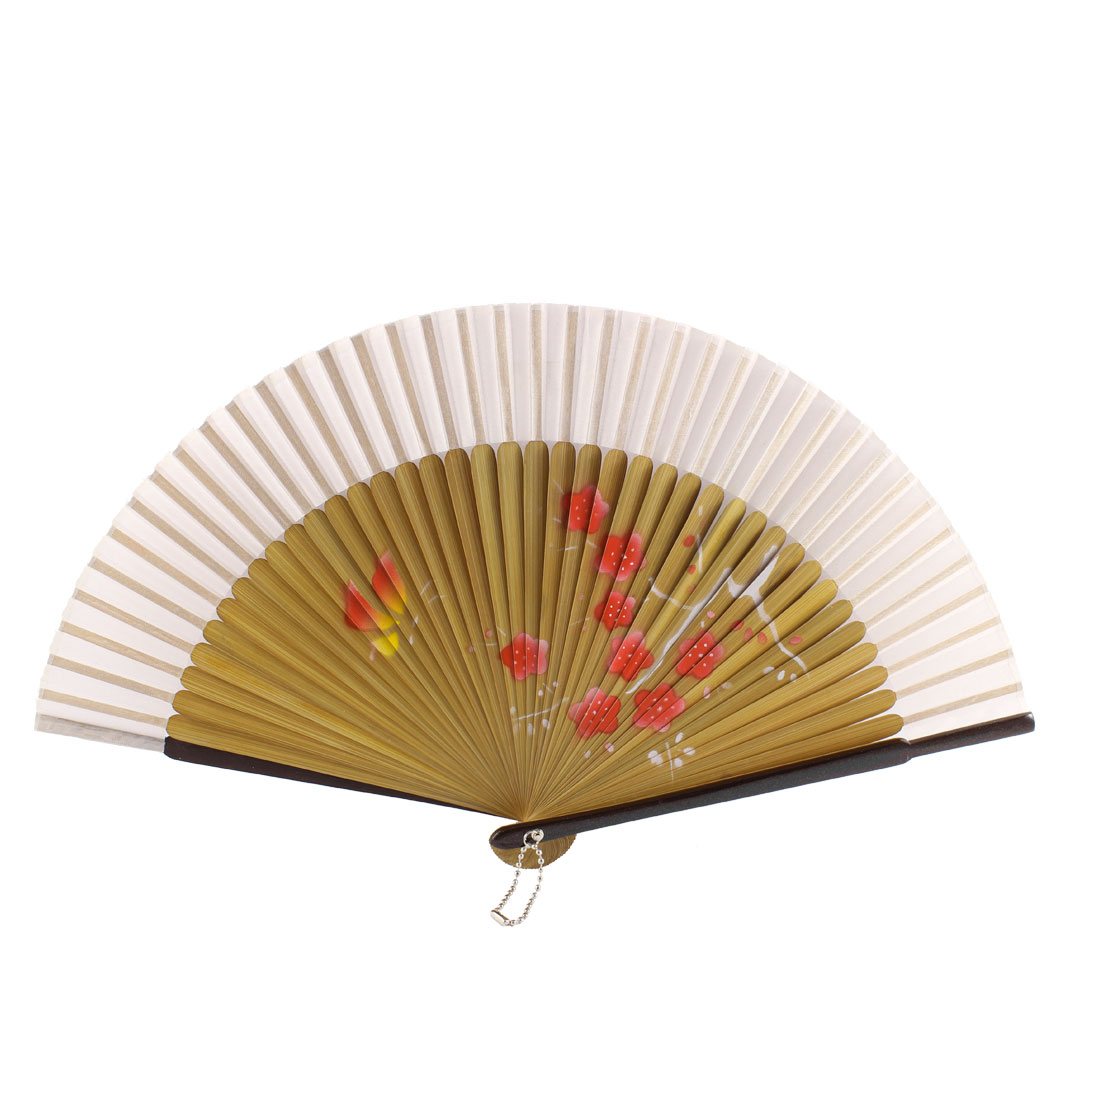 Dancer Summer Wedding Party Plum Blossom Printed Nylon Bamboo Rib Folding Hand Fan Gift Ornament White Wood Color